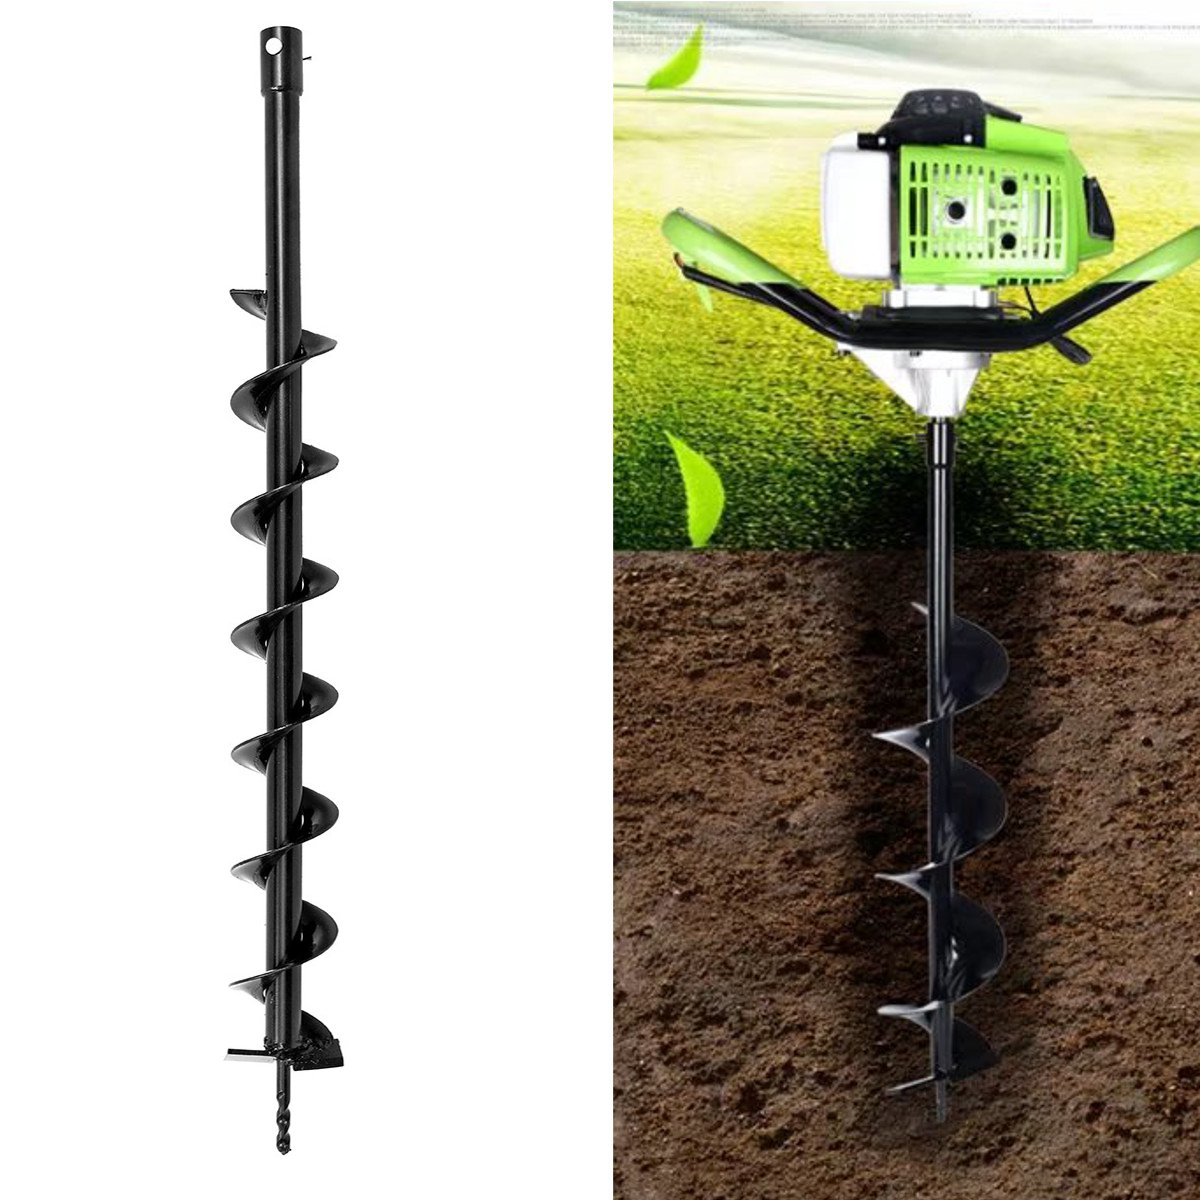 800mmX80mm Auger Drill Bit Hole Digger Earth Auger Garden Petrol Post Hole Digger Tool Ground Drill Machine Tools Accessories